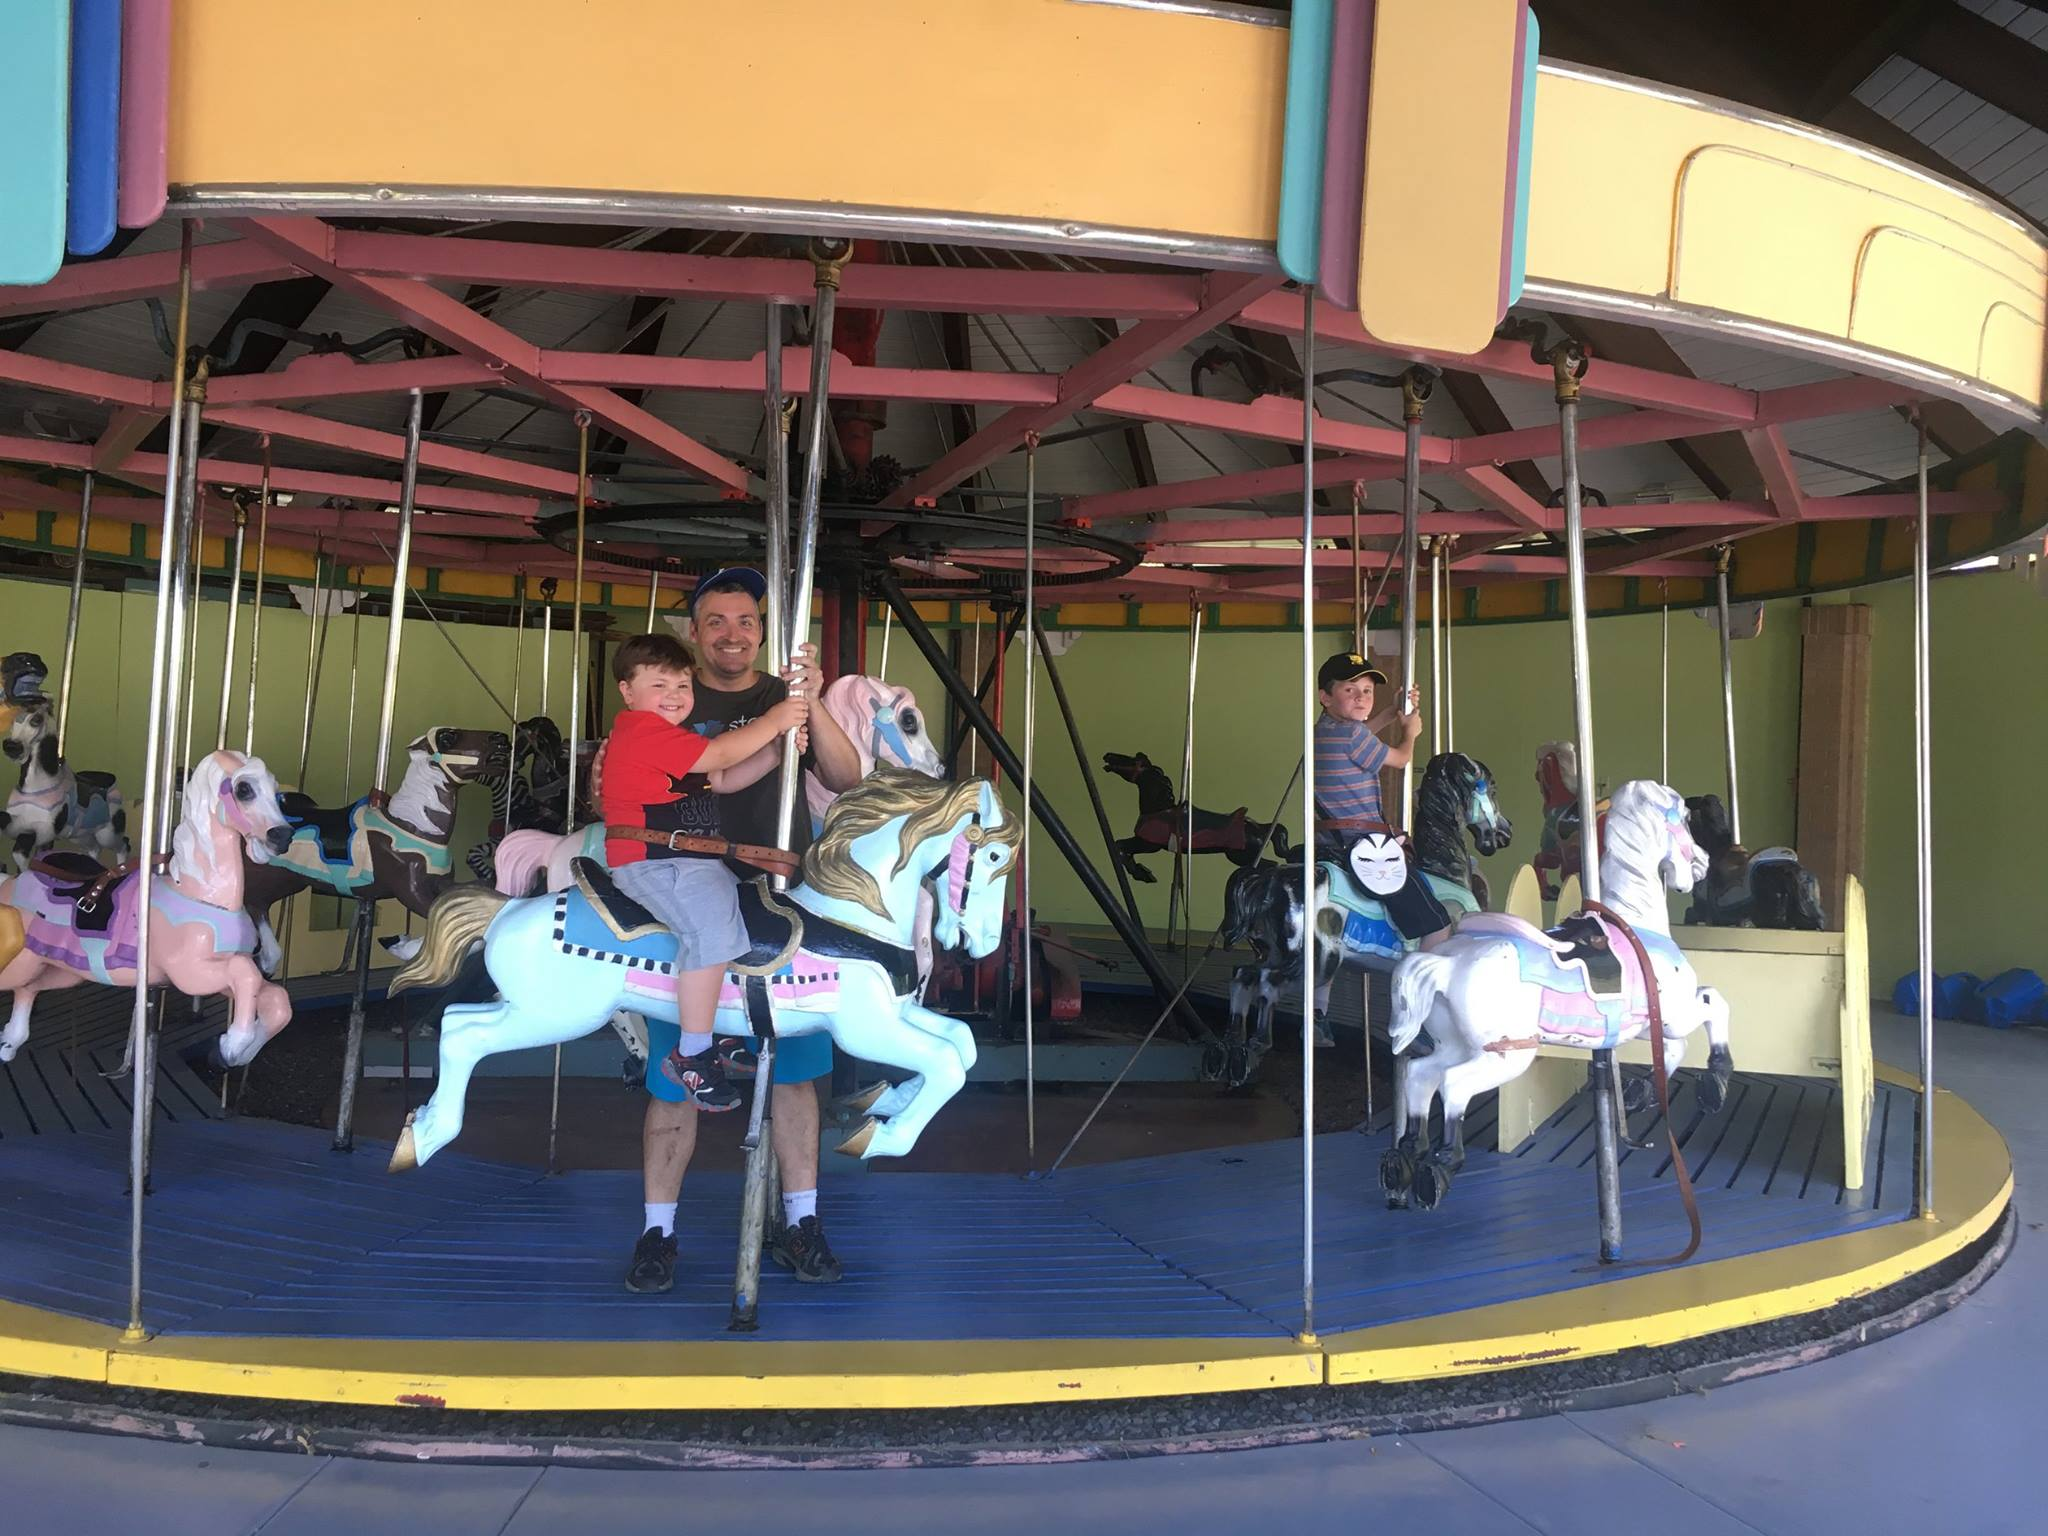 Riding the Carousel at Liberty Park